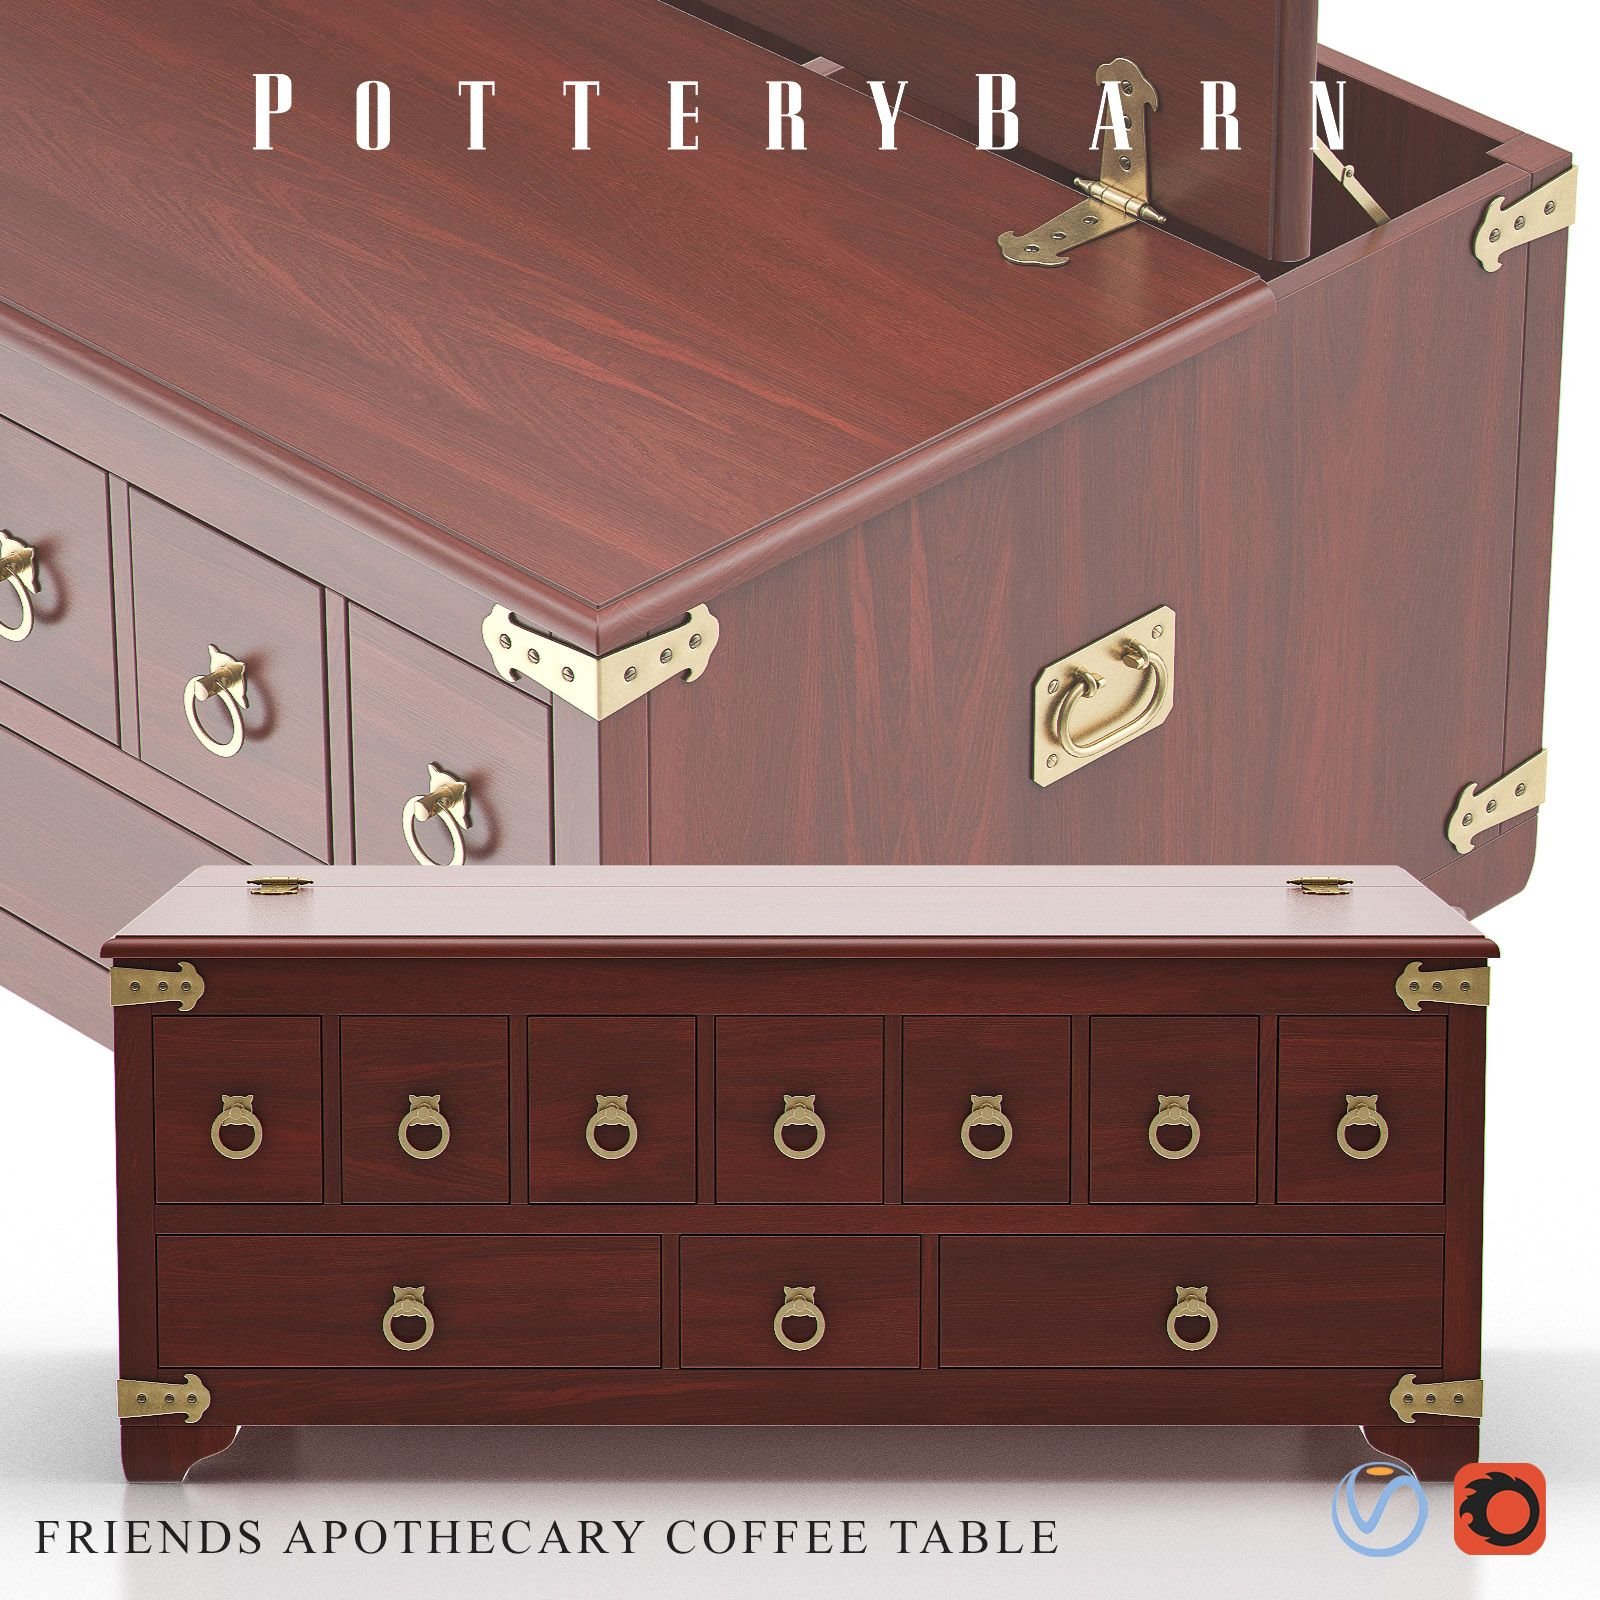 Friends Apothecary Coffee Table Pottery Barn Table Coffee Table Table [ 1600 x 1600 Pixel ]